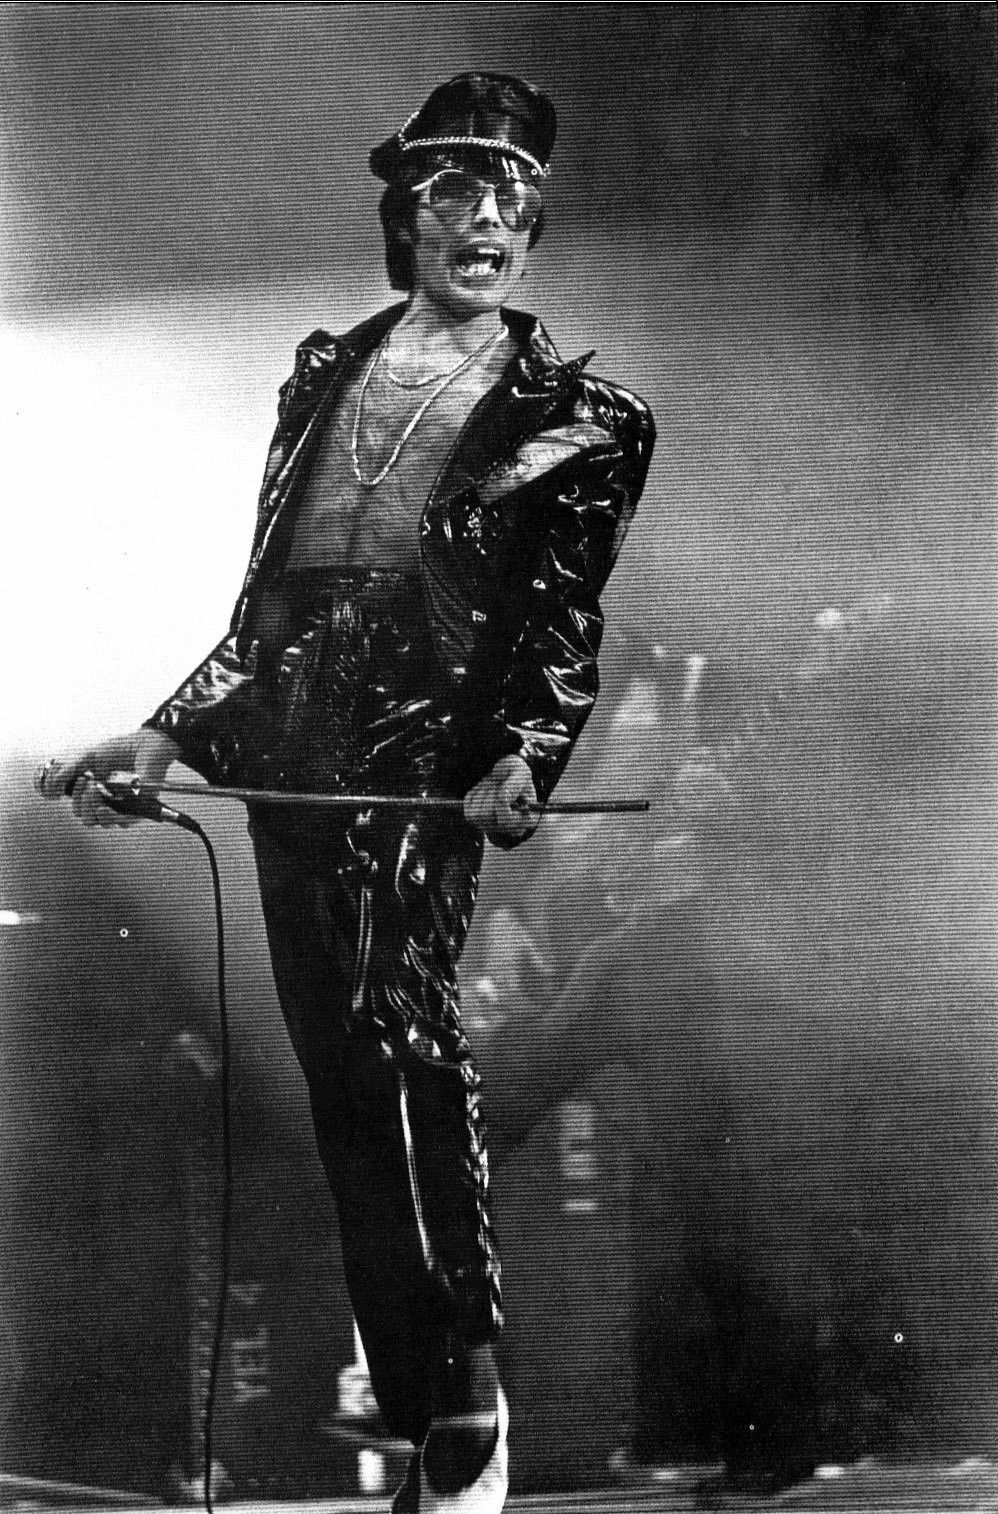 Freddie Mercury - in the late of the 70's